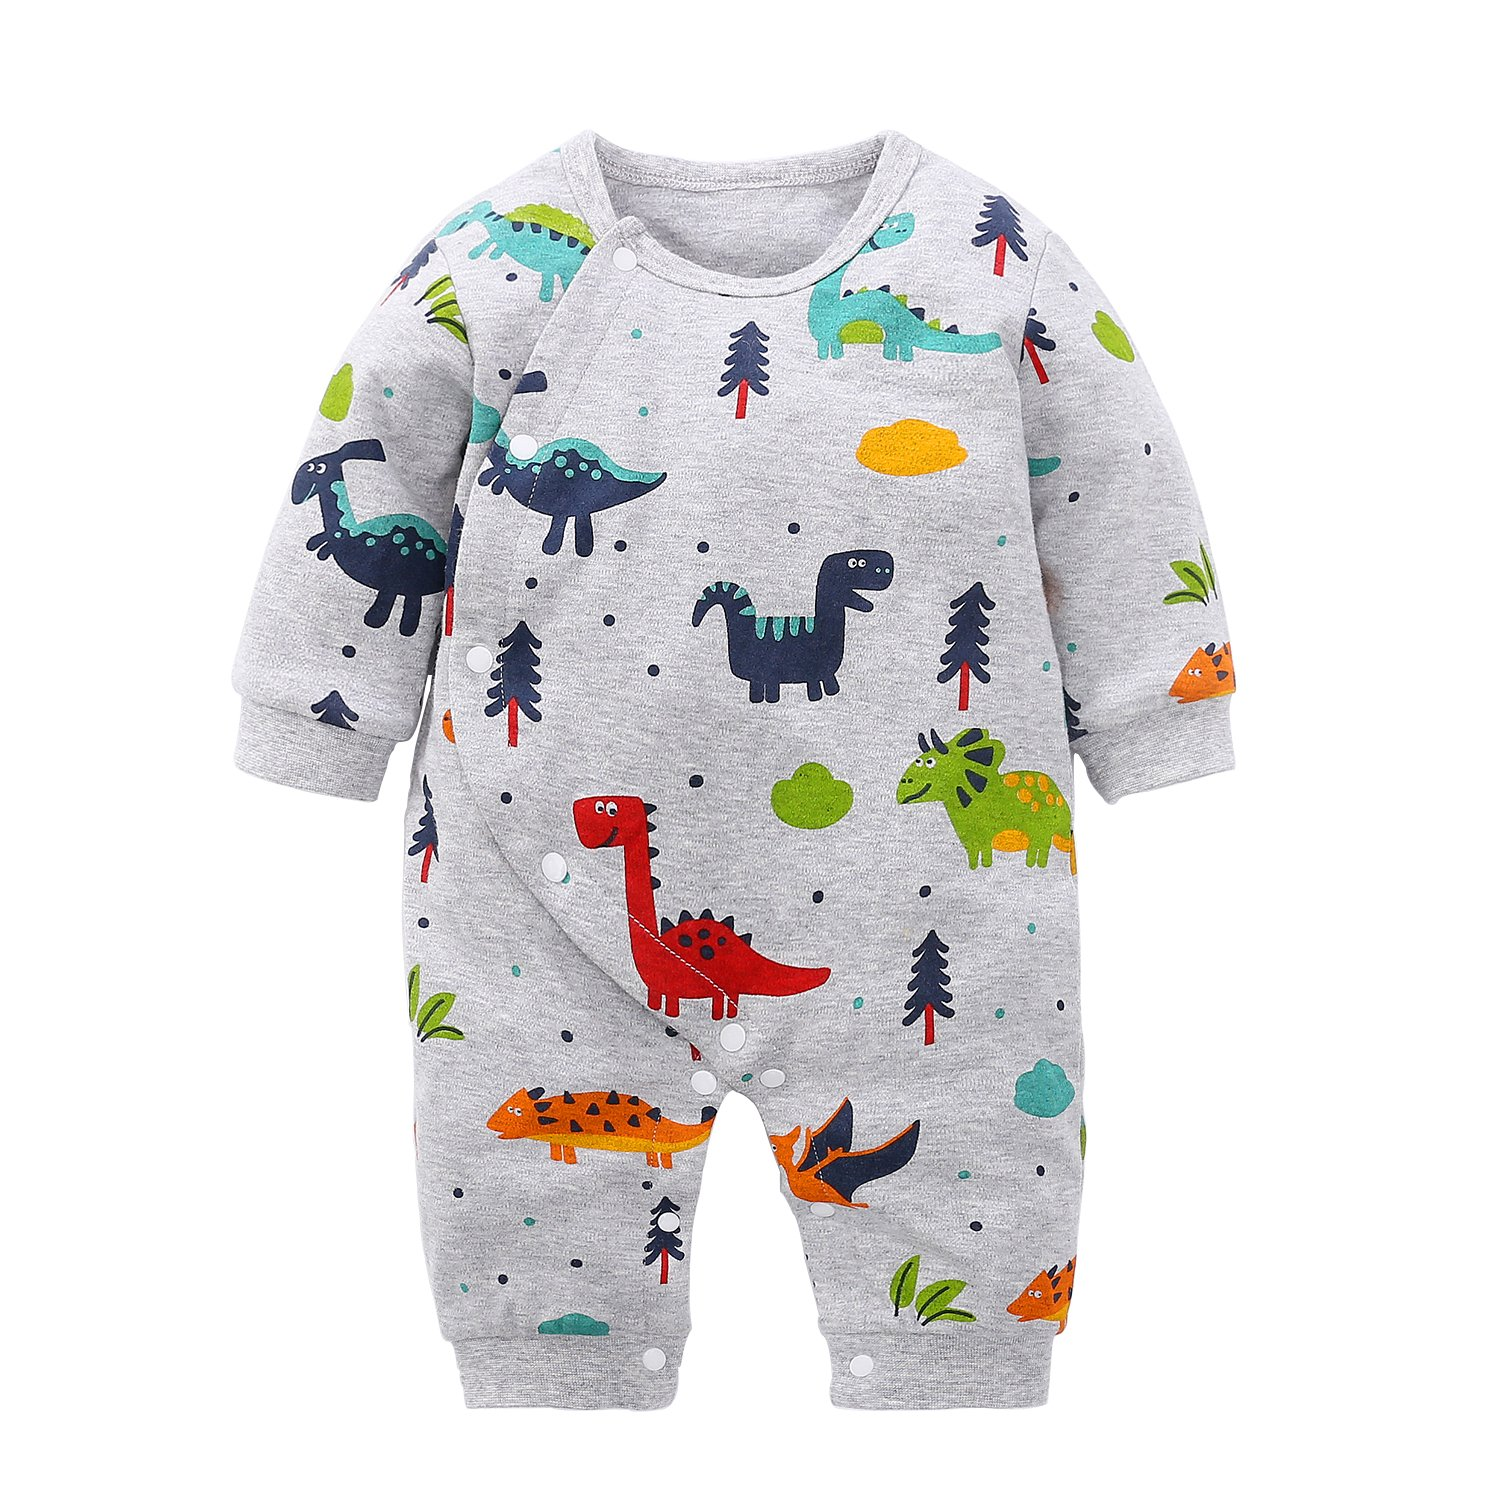 Yierying Baby Boys And Girls Cartoon Dinosaurs 100% Cotton Baby Clothes Romper Bodysuit